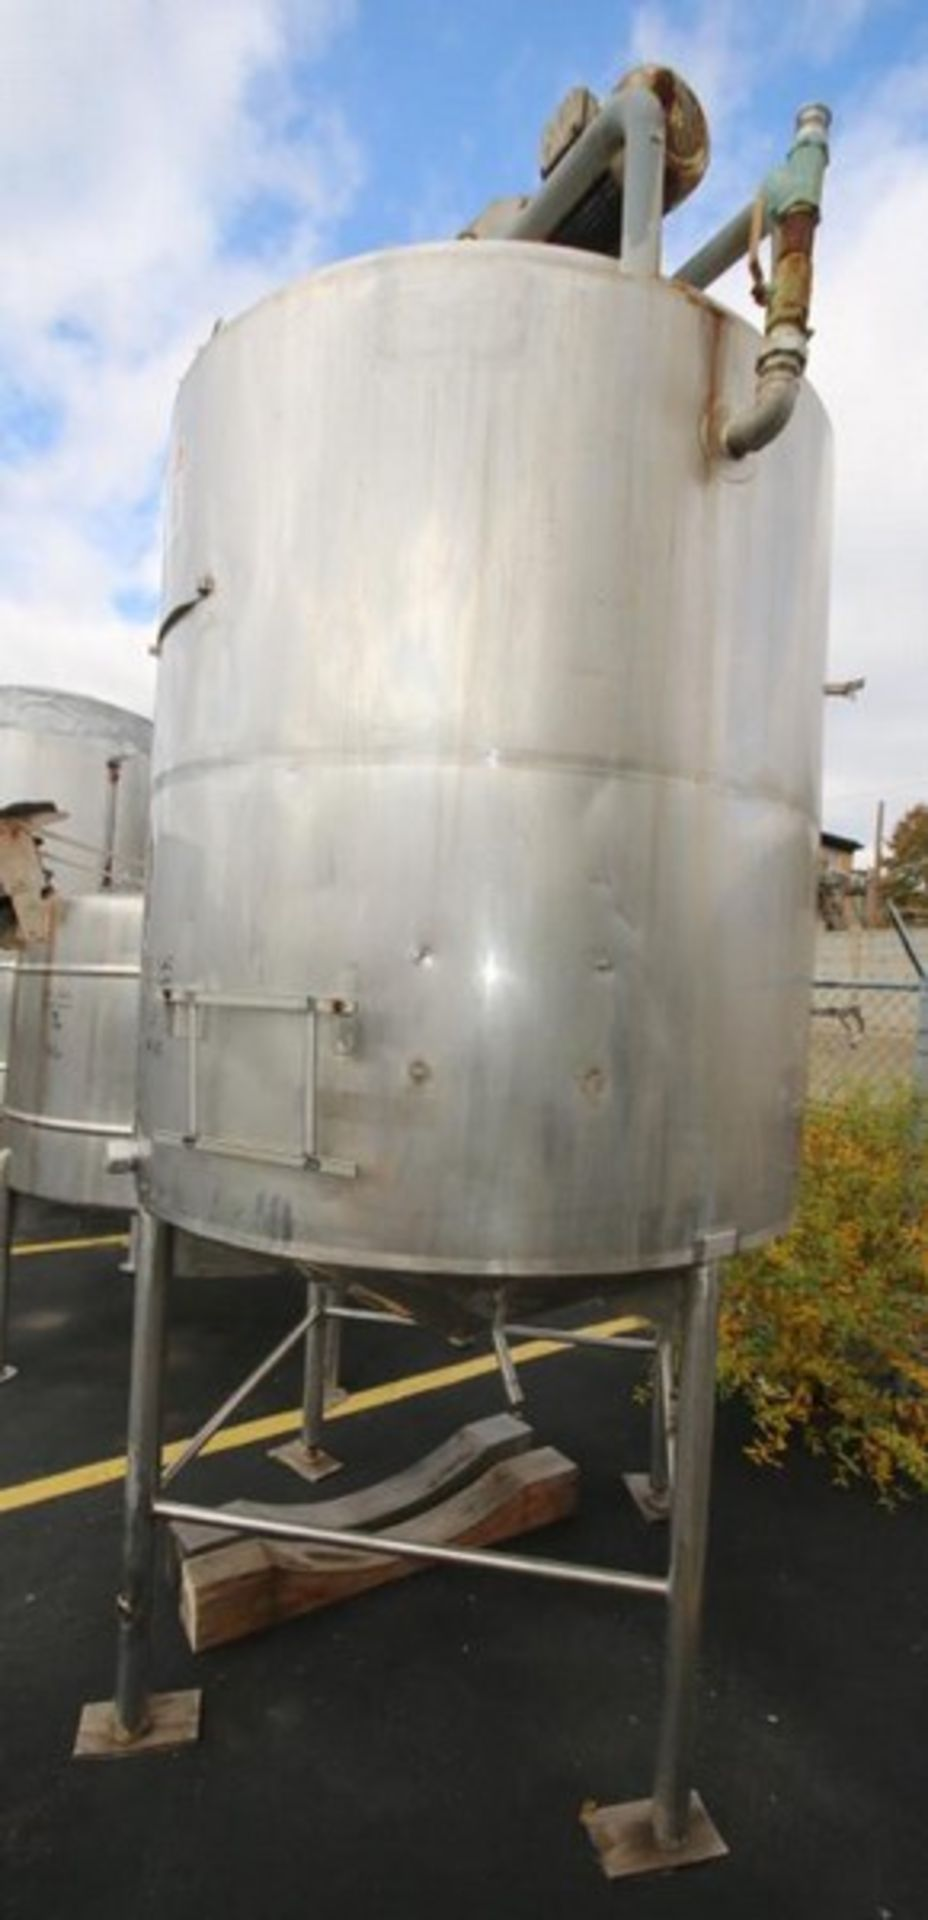 Lot 27 - Aprox. 1,000 Gal. S/S Jacketed Tank, Dome Top Cone Bottom, with 5/2.5 hp 1740/840 RPM Agitator, 460V